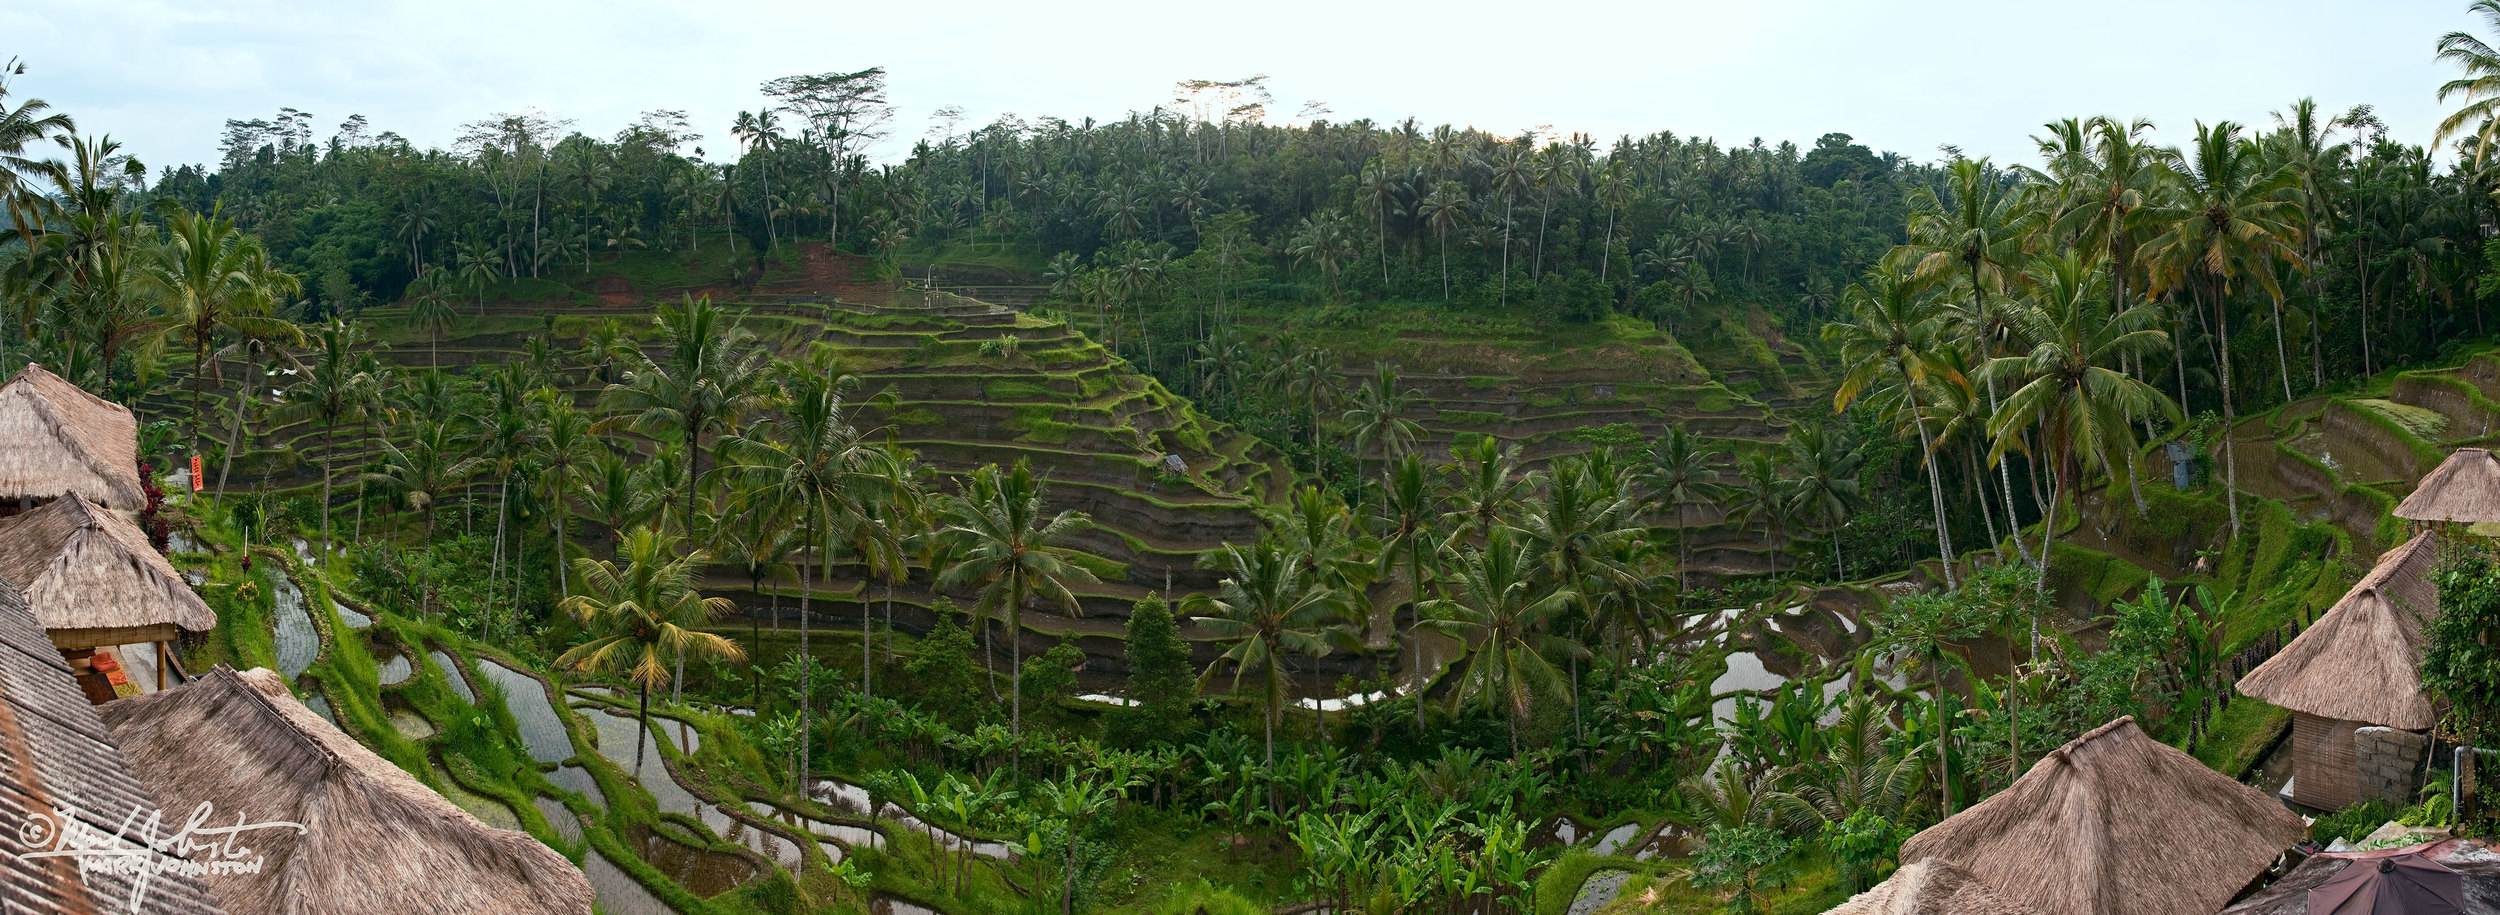 Terraced fields and thatch-roofed dwellings, Bali, Indonesia.